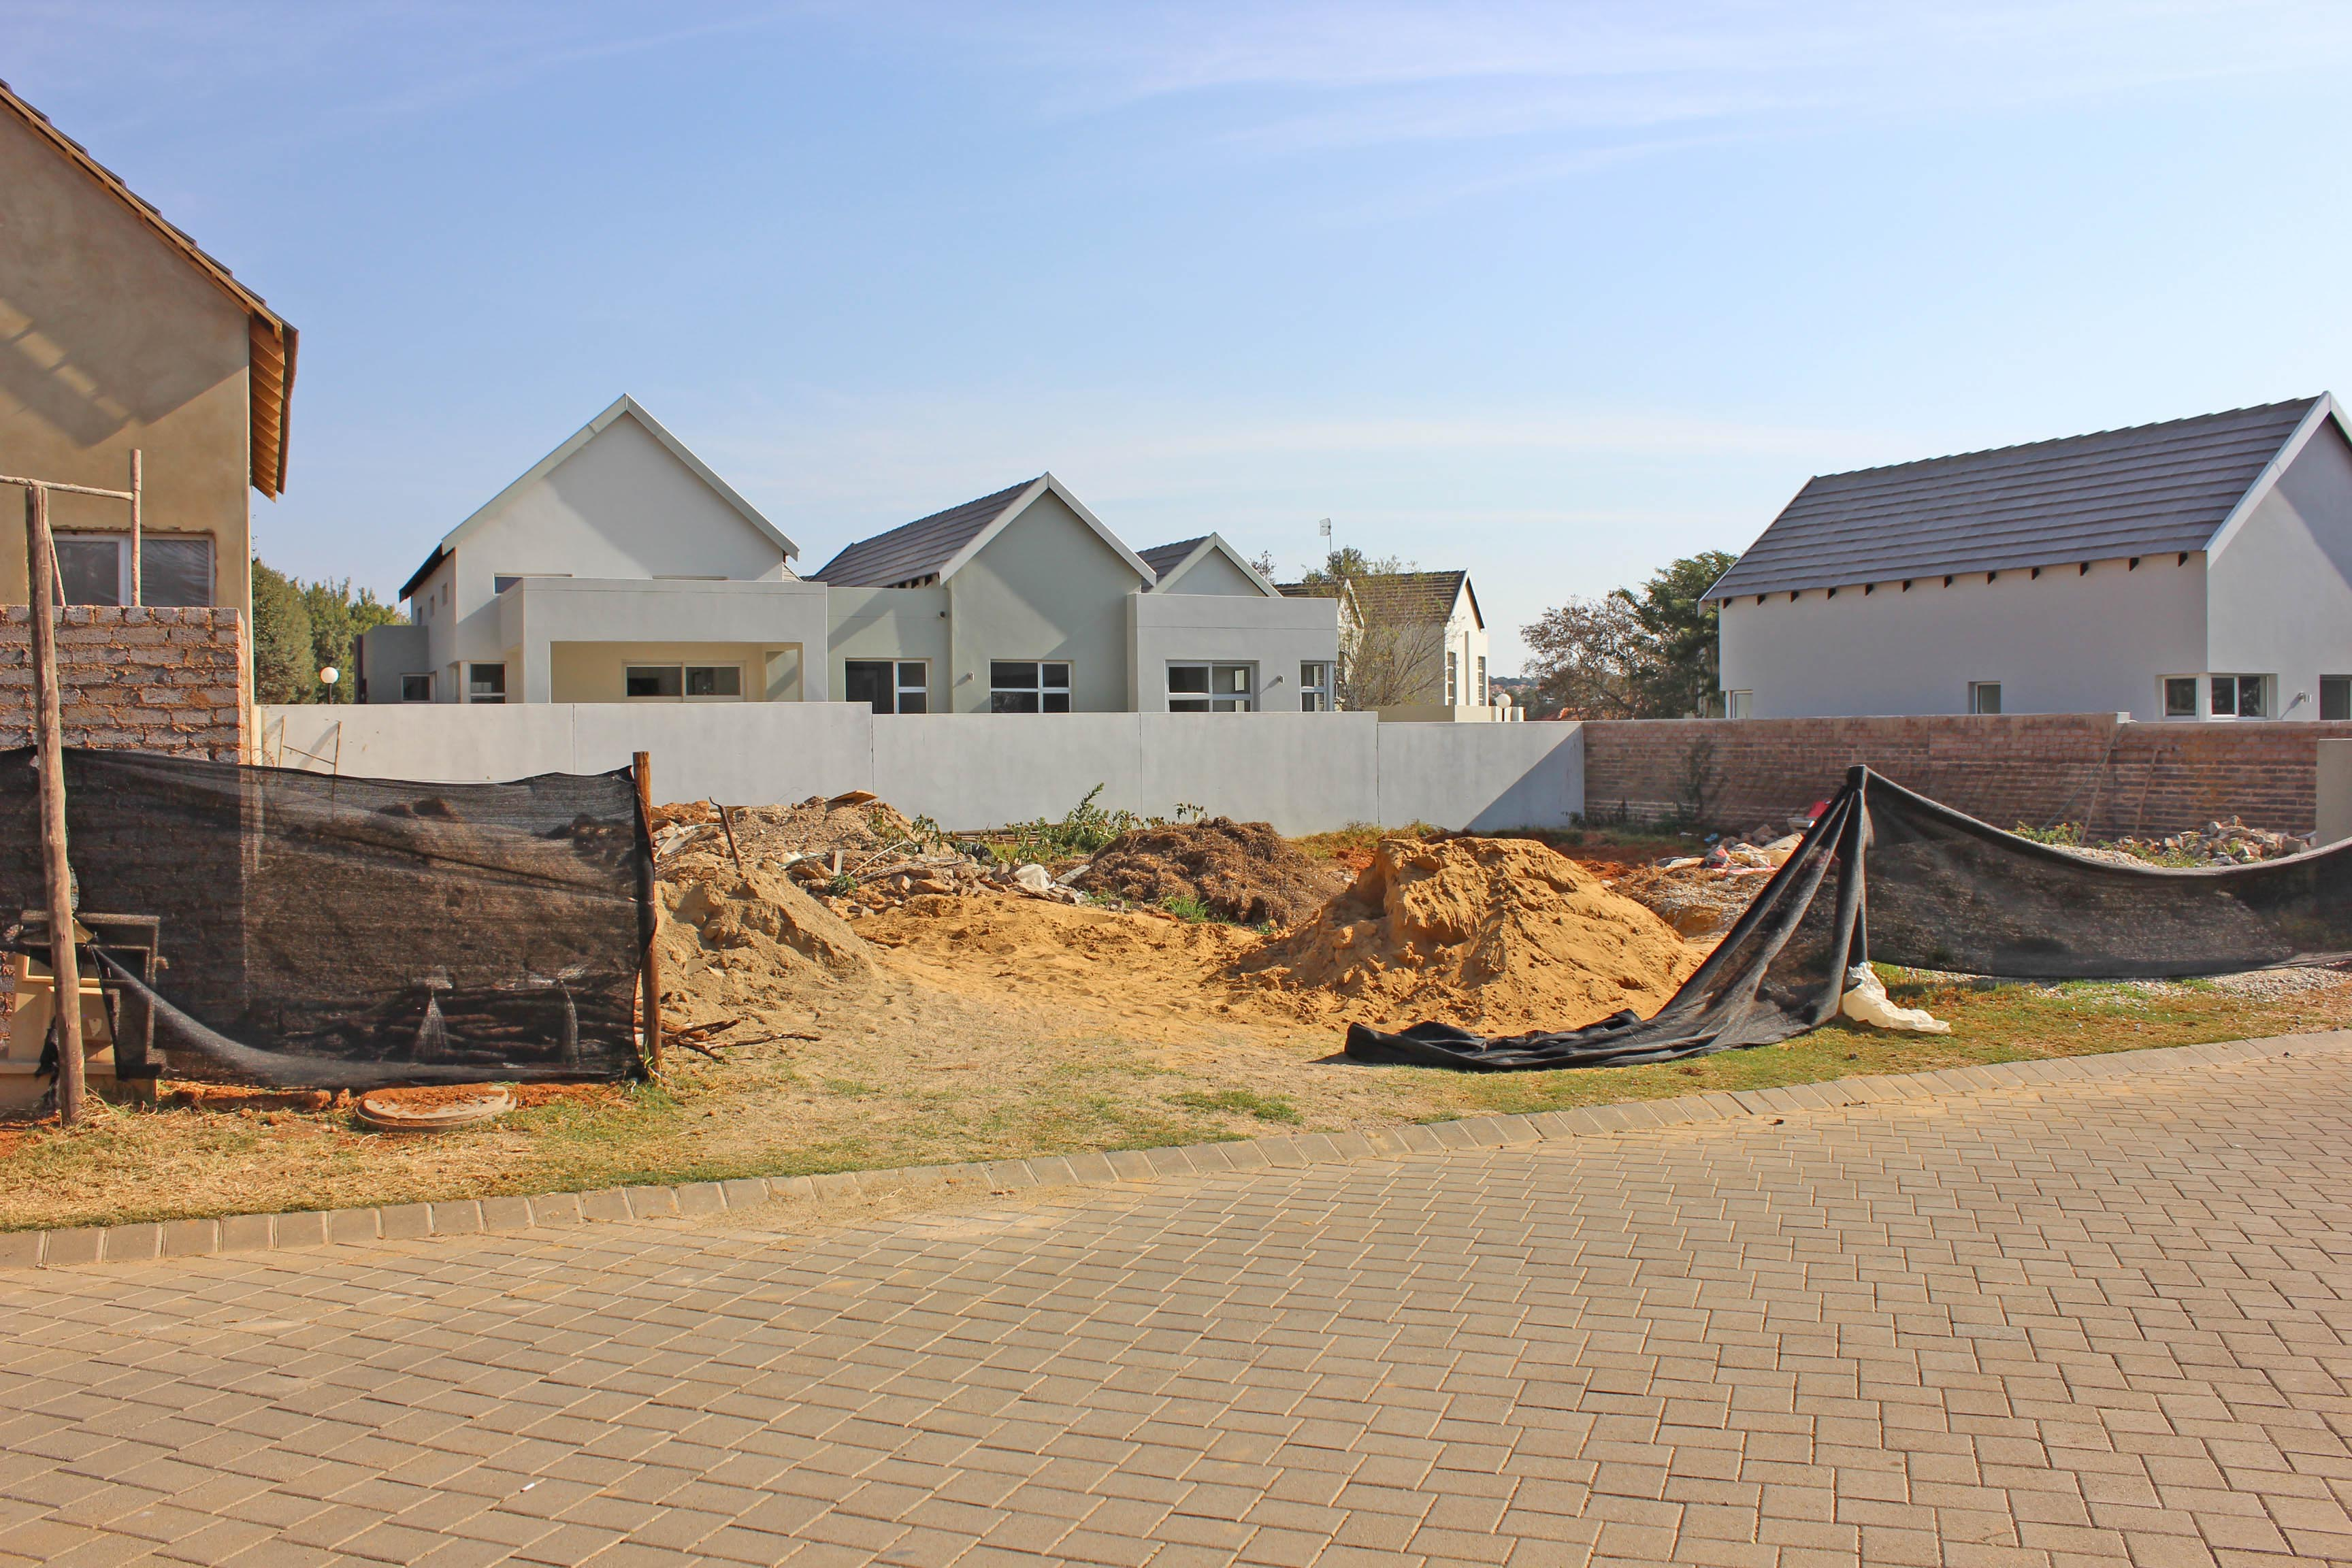 3 Bedroom Townhouse for sale in North Riding ENT0075308 : photo#22